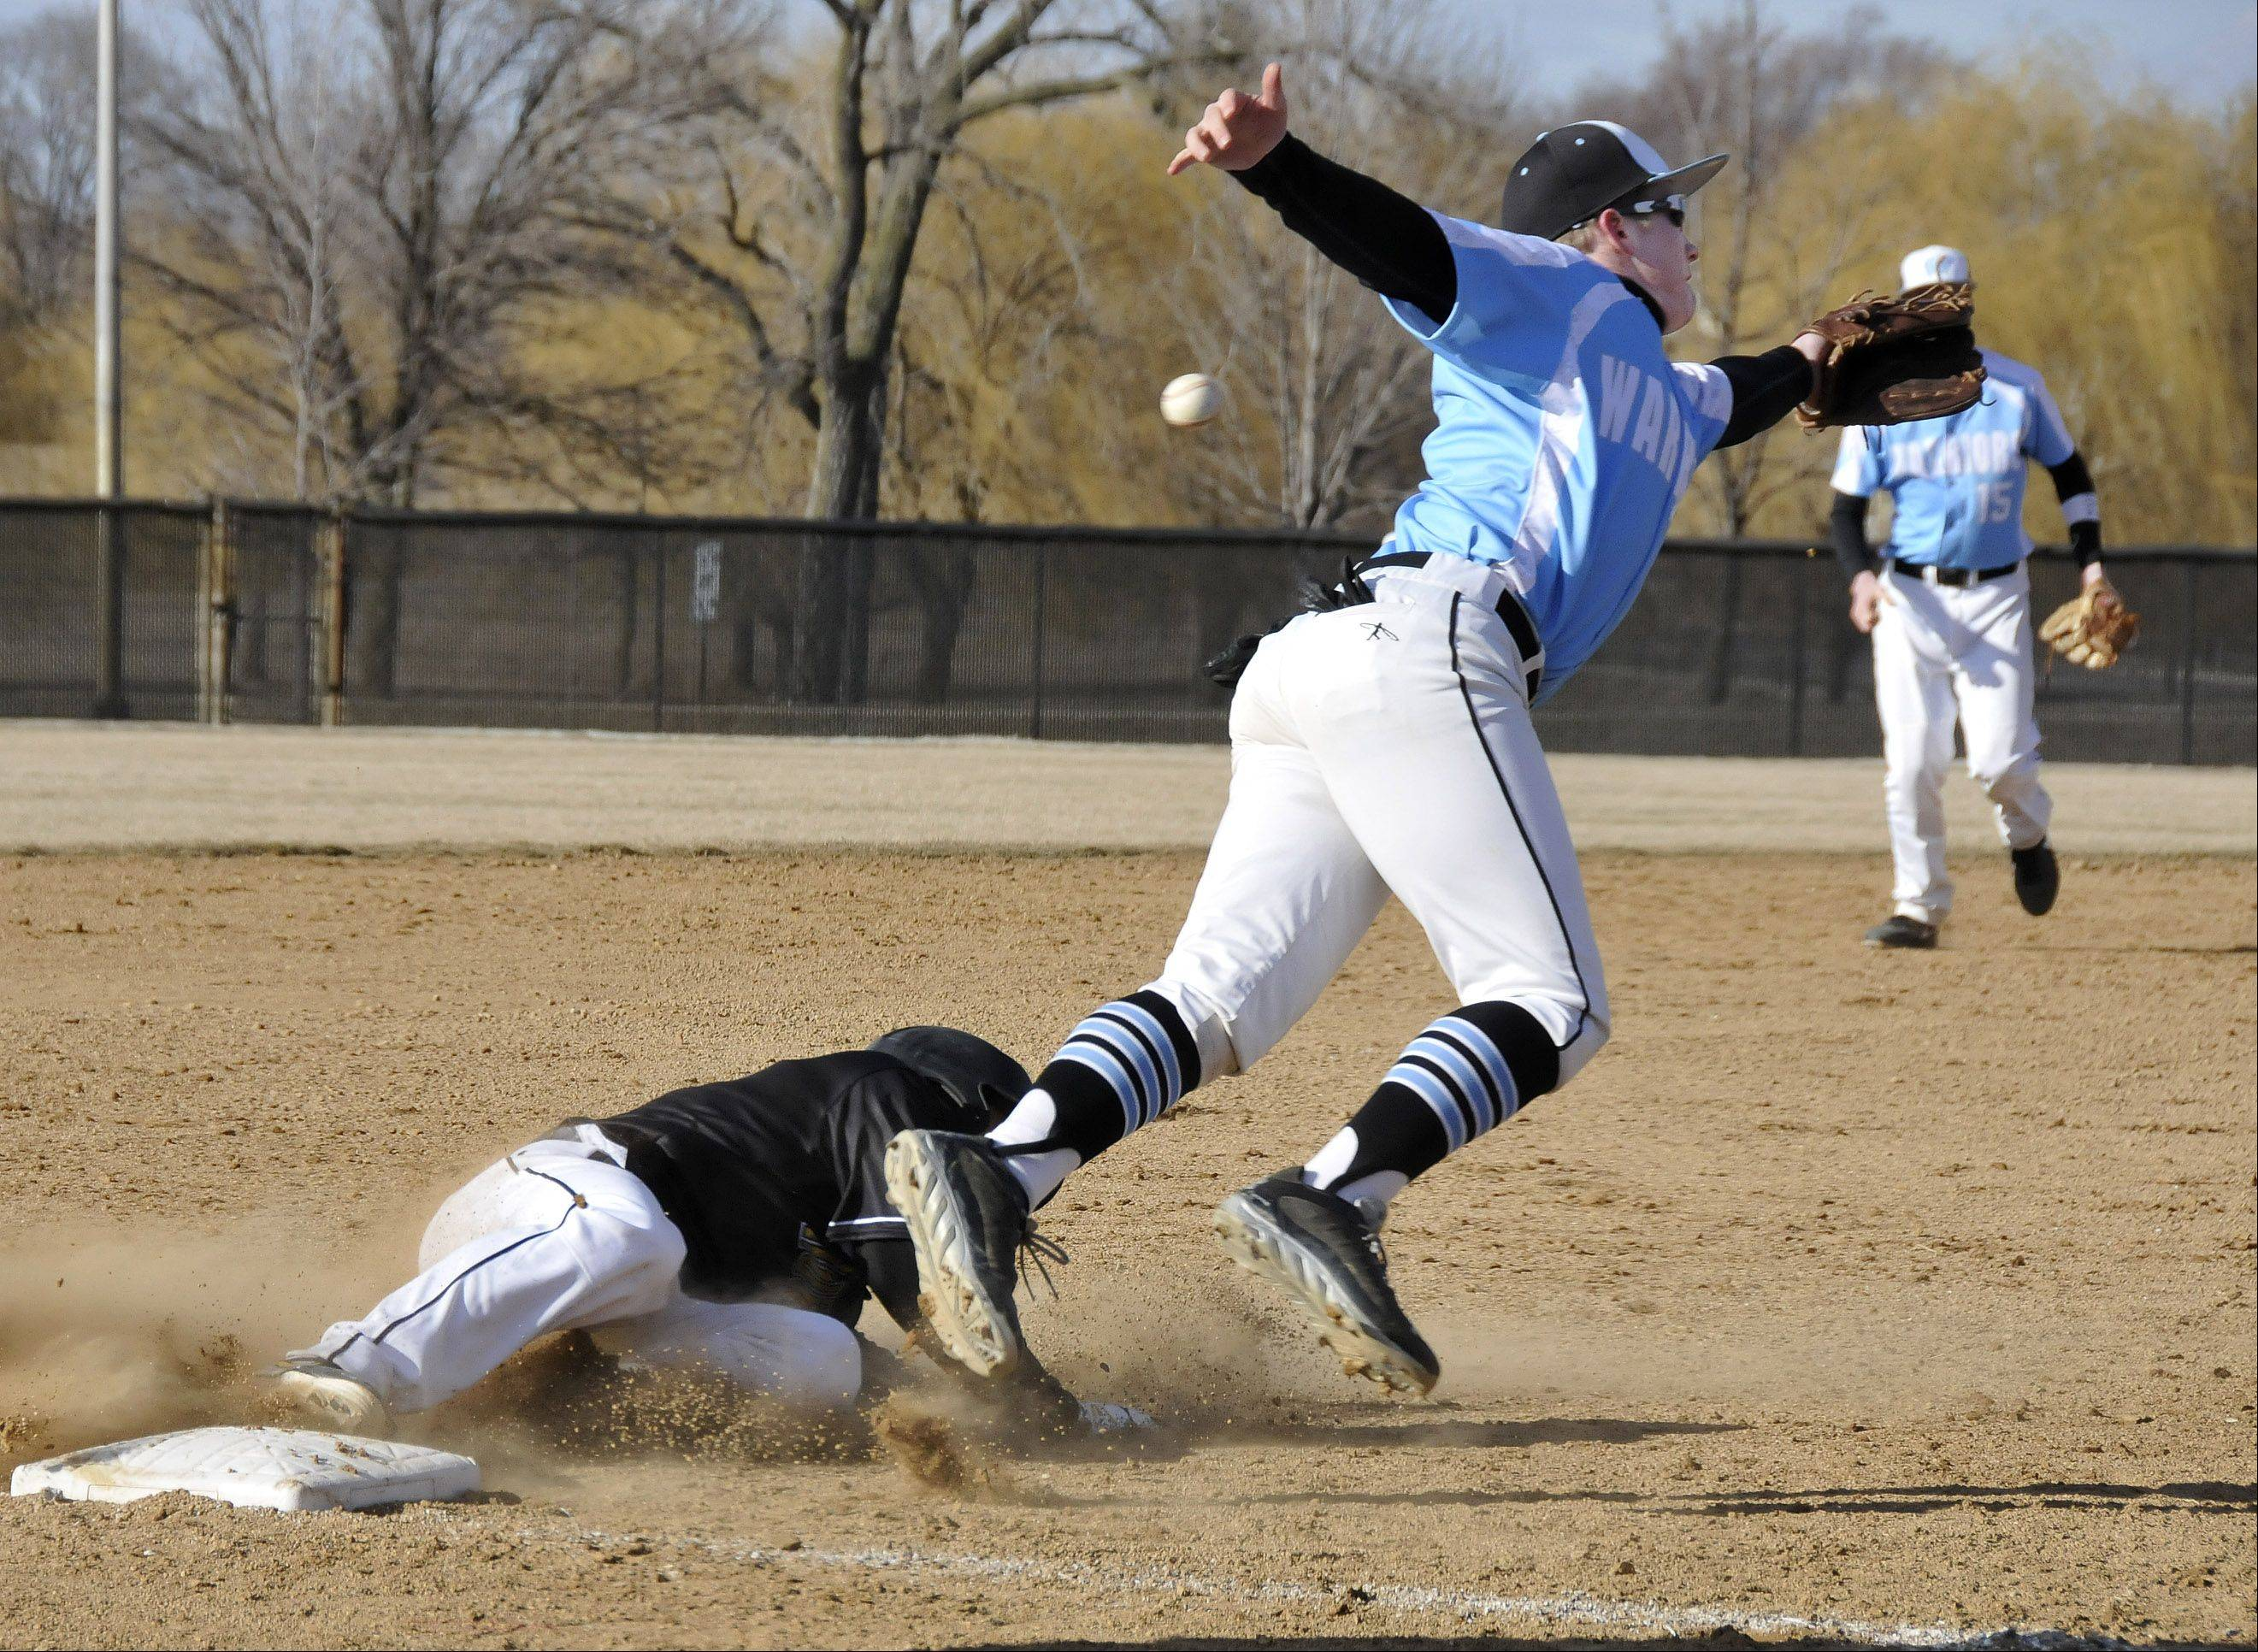 Willowbrook's third baseman Jake Cady lunges for a throw from their catcher as Hinsdale South's Don Buonavolanto slides into third. After the ball sailed into left field, he subsequently scored on the play. Hinsdale South played baseball Monday afternoon at Willowbrook High School in Villa Park.